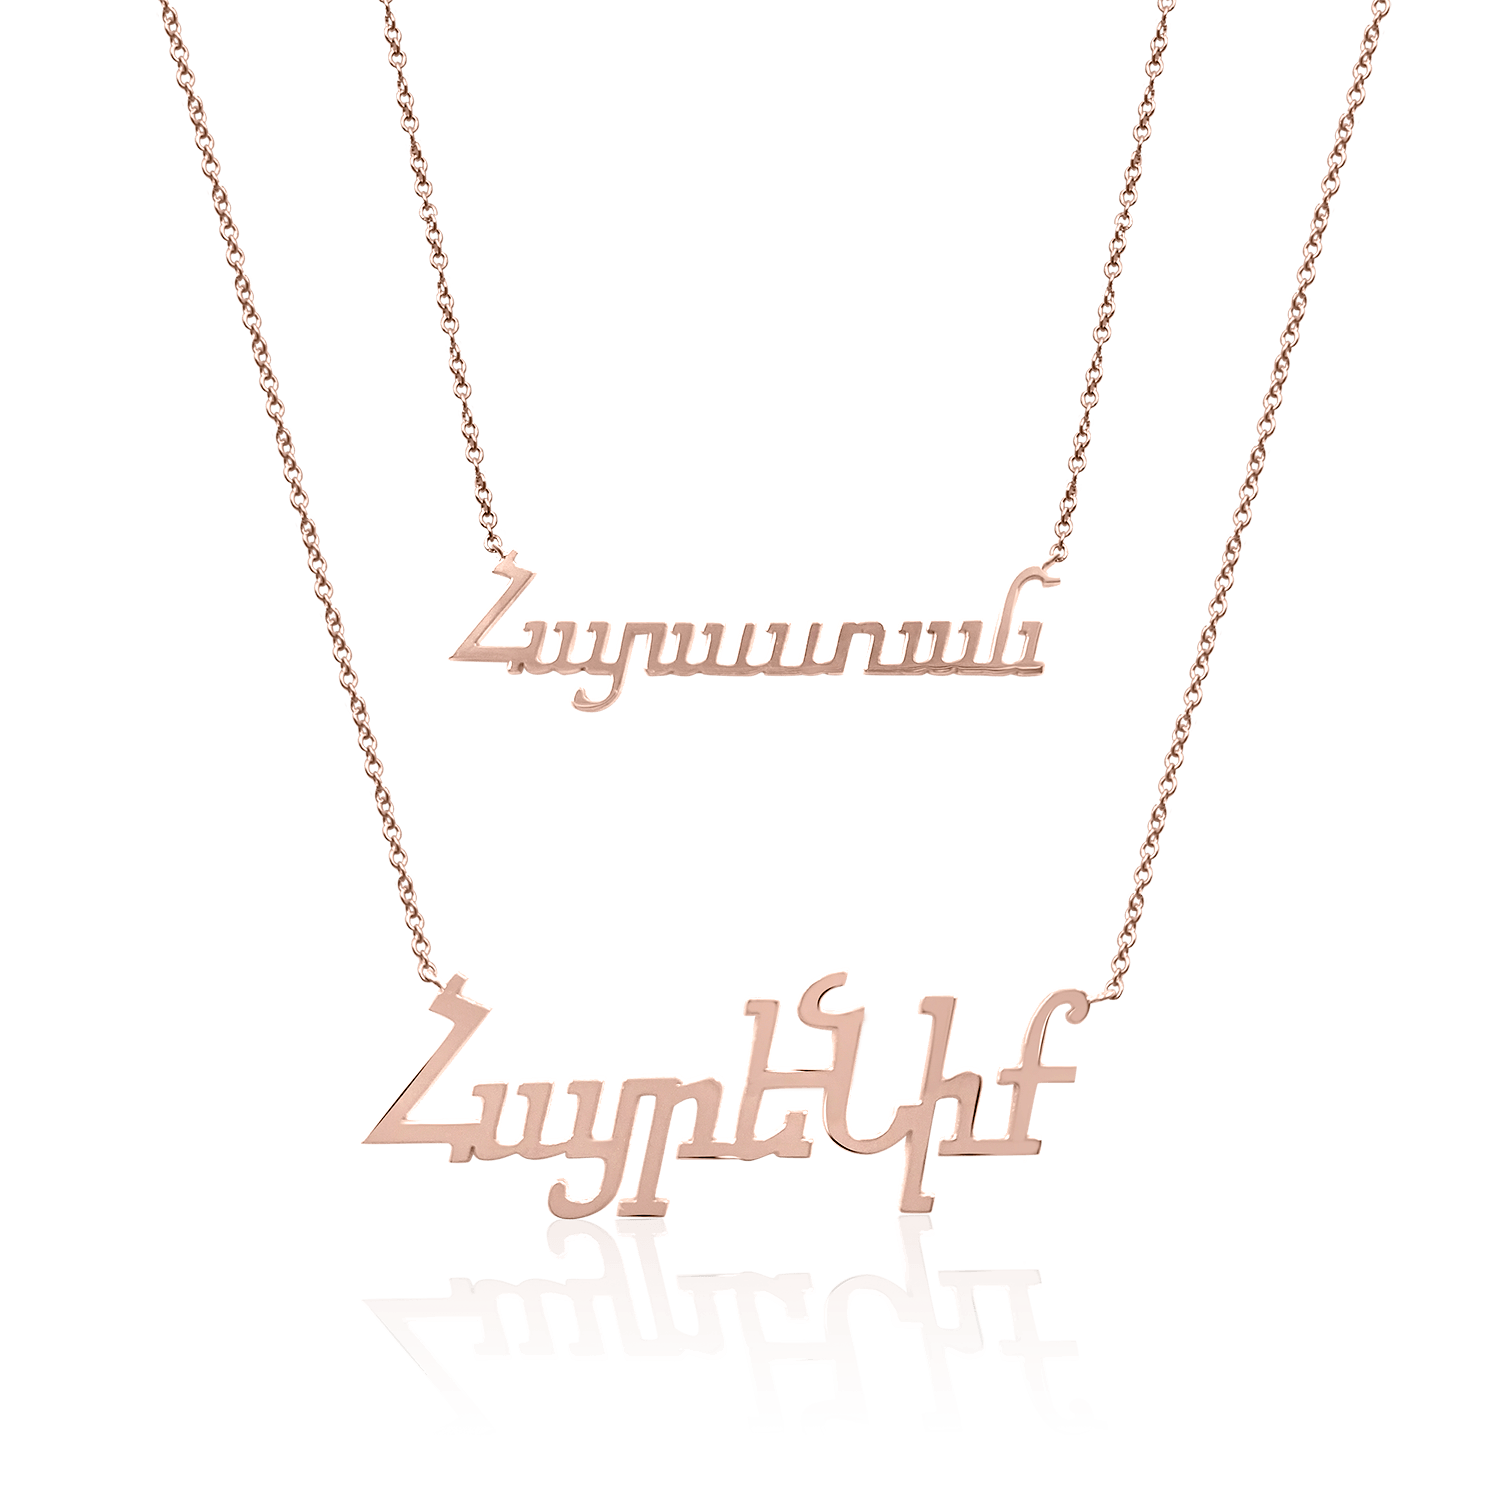 Personalized Armenian Letter Name Necklace